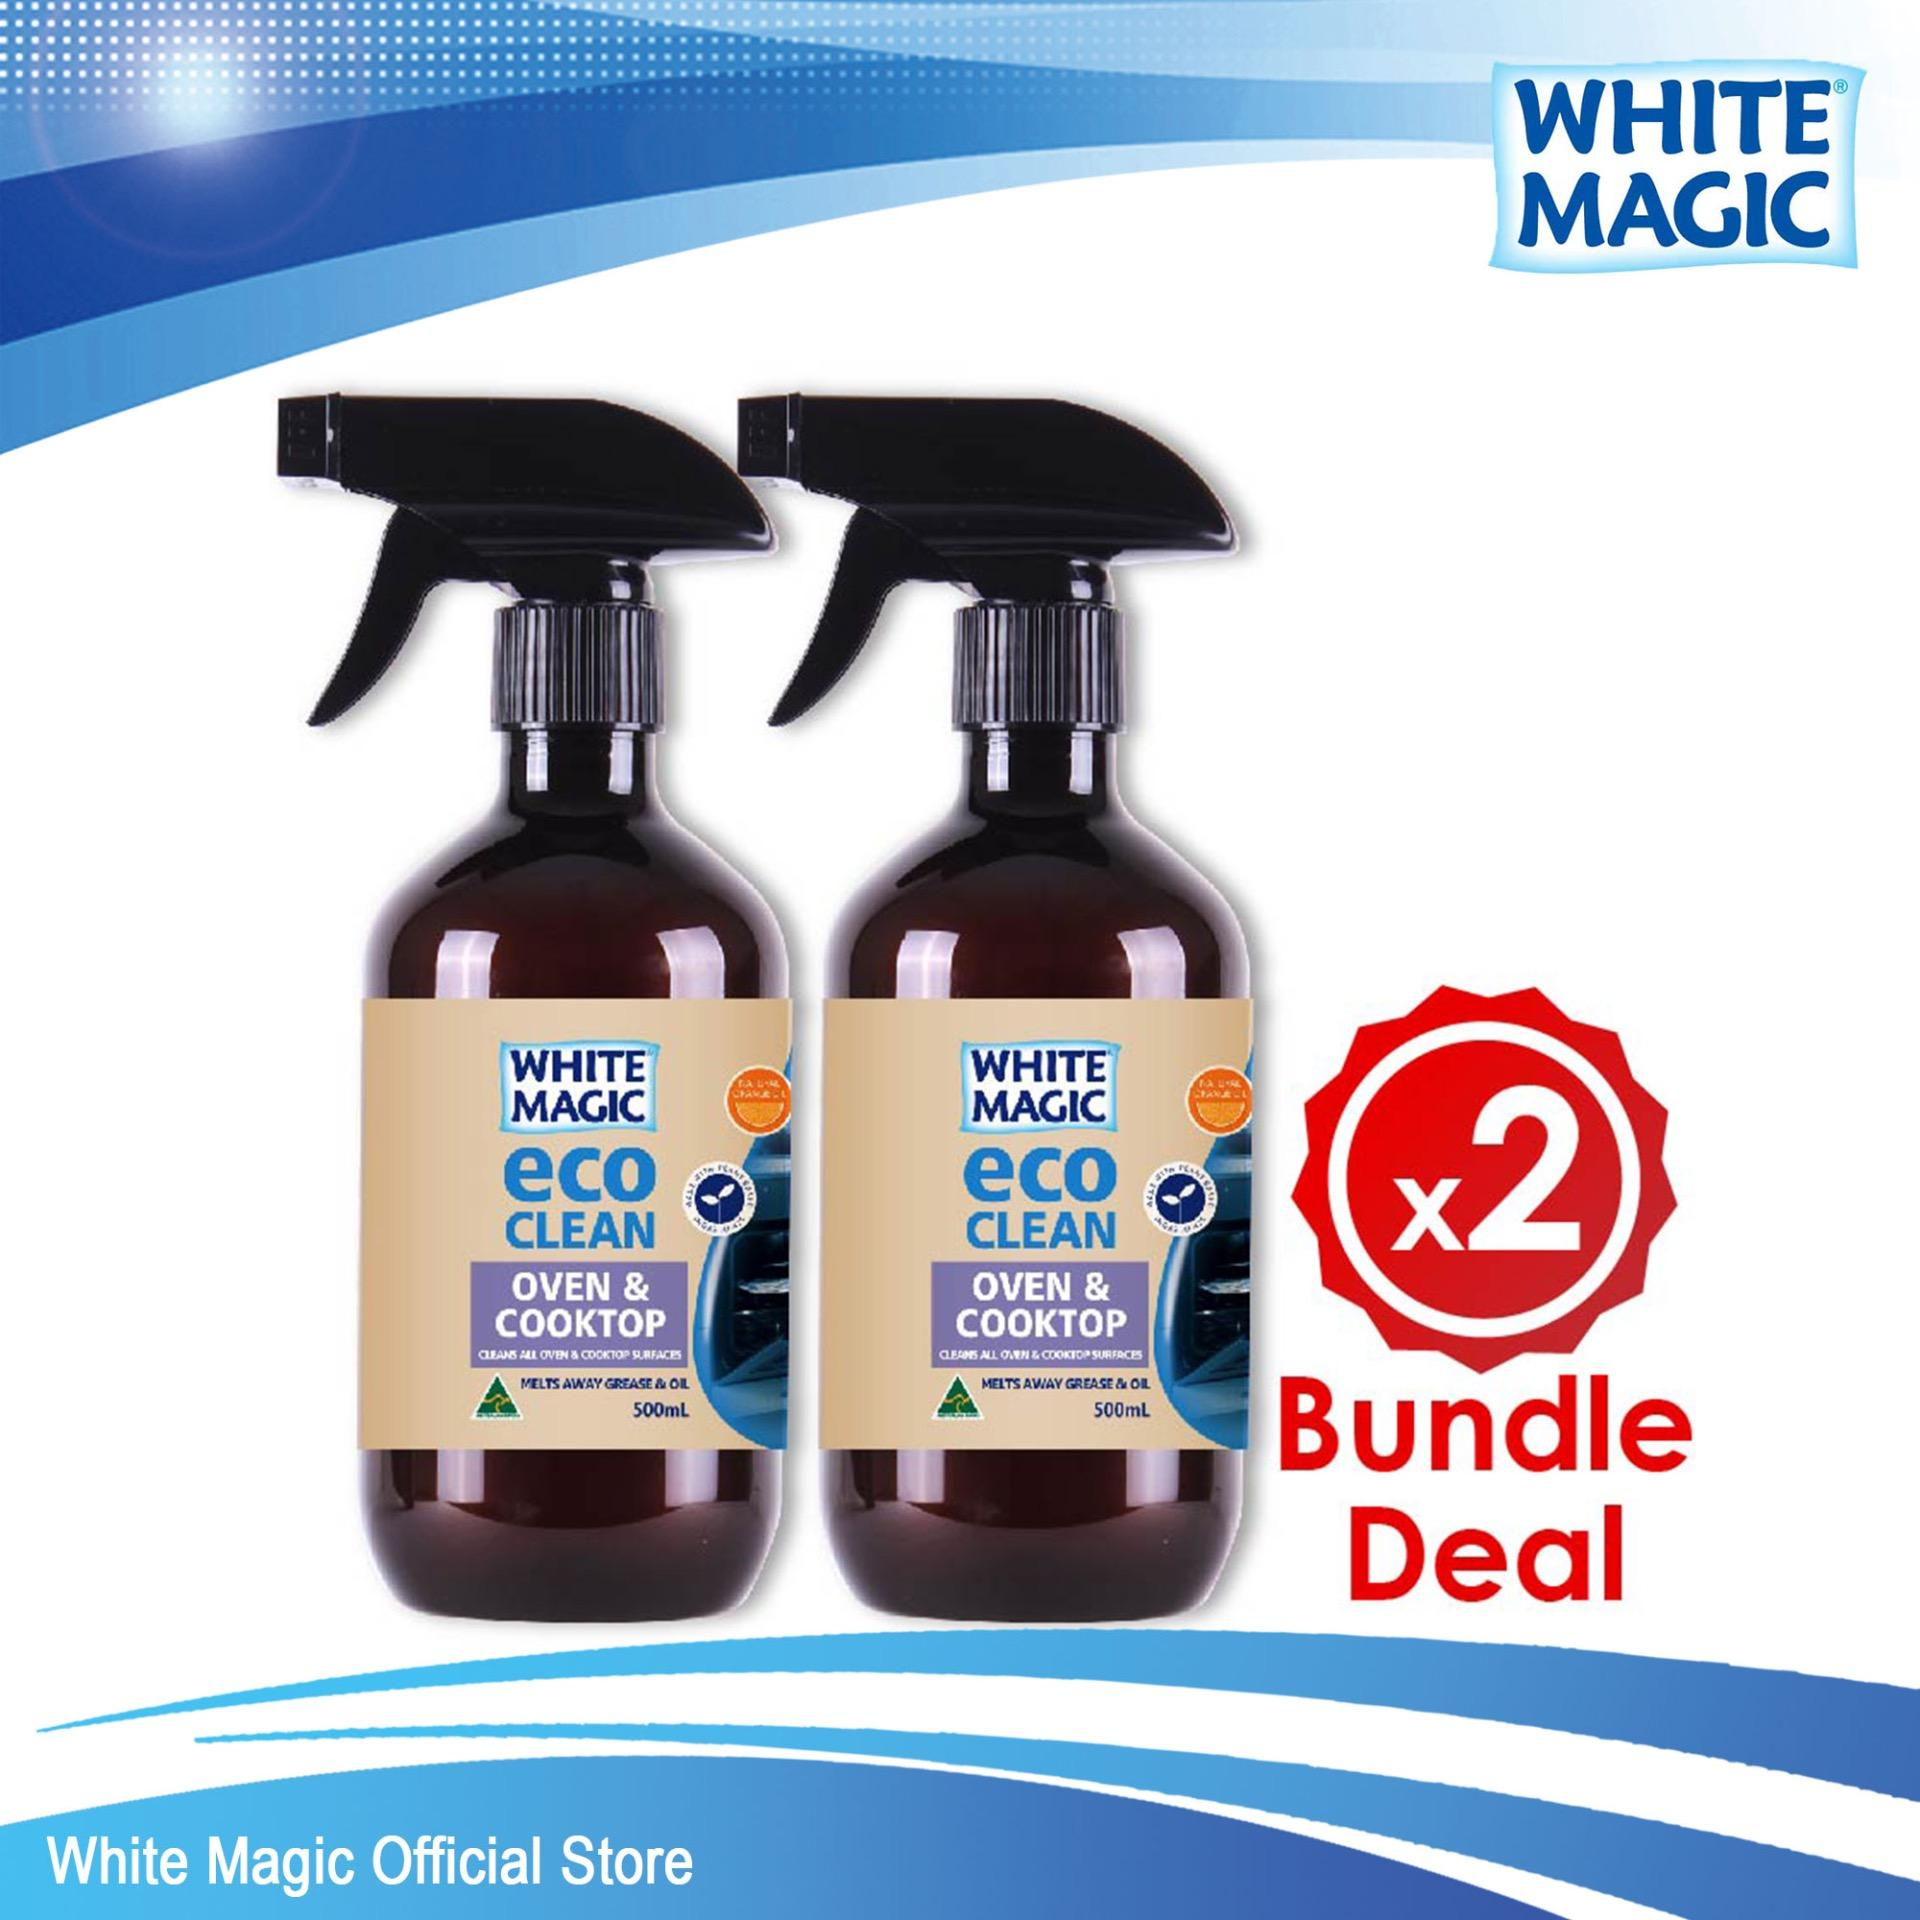 Bundle Deal White Magic Eco Clean Oven Cooktop X 2 Promo Code